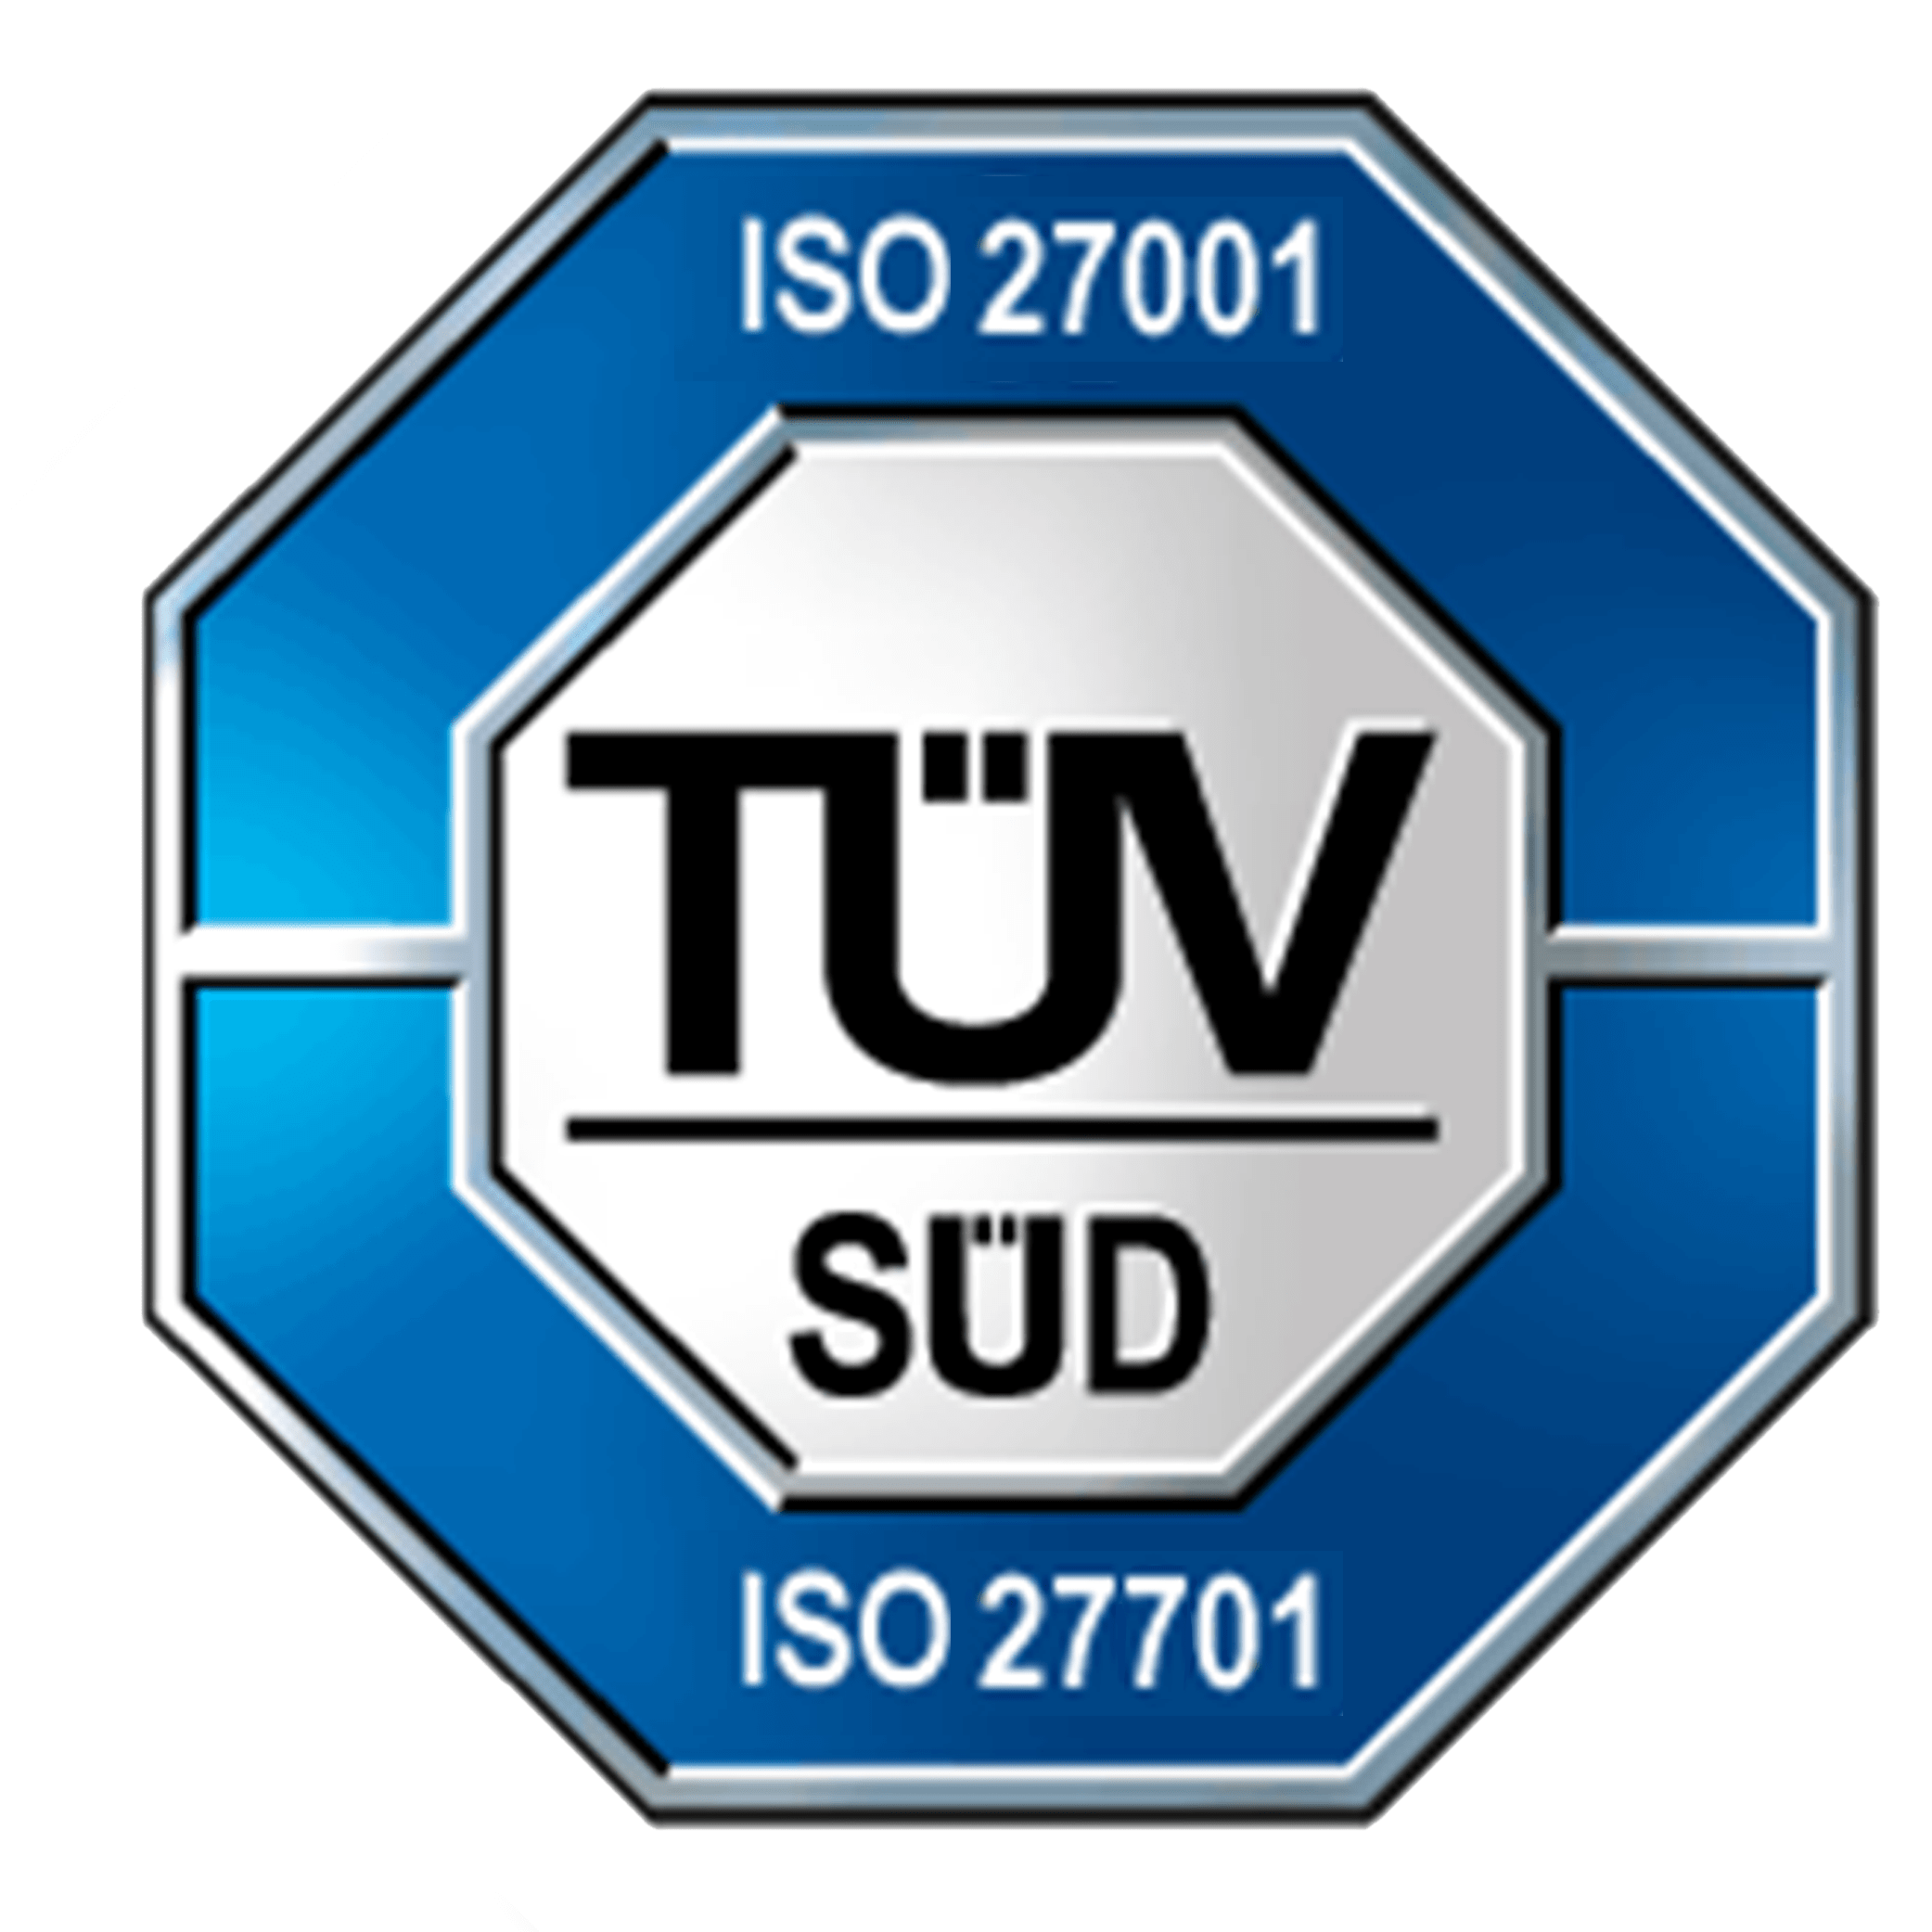 ISO 27701 Certification